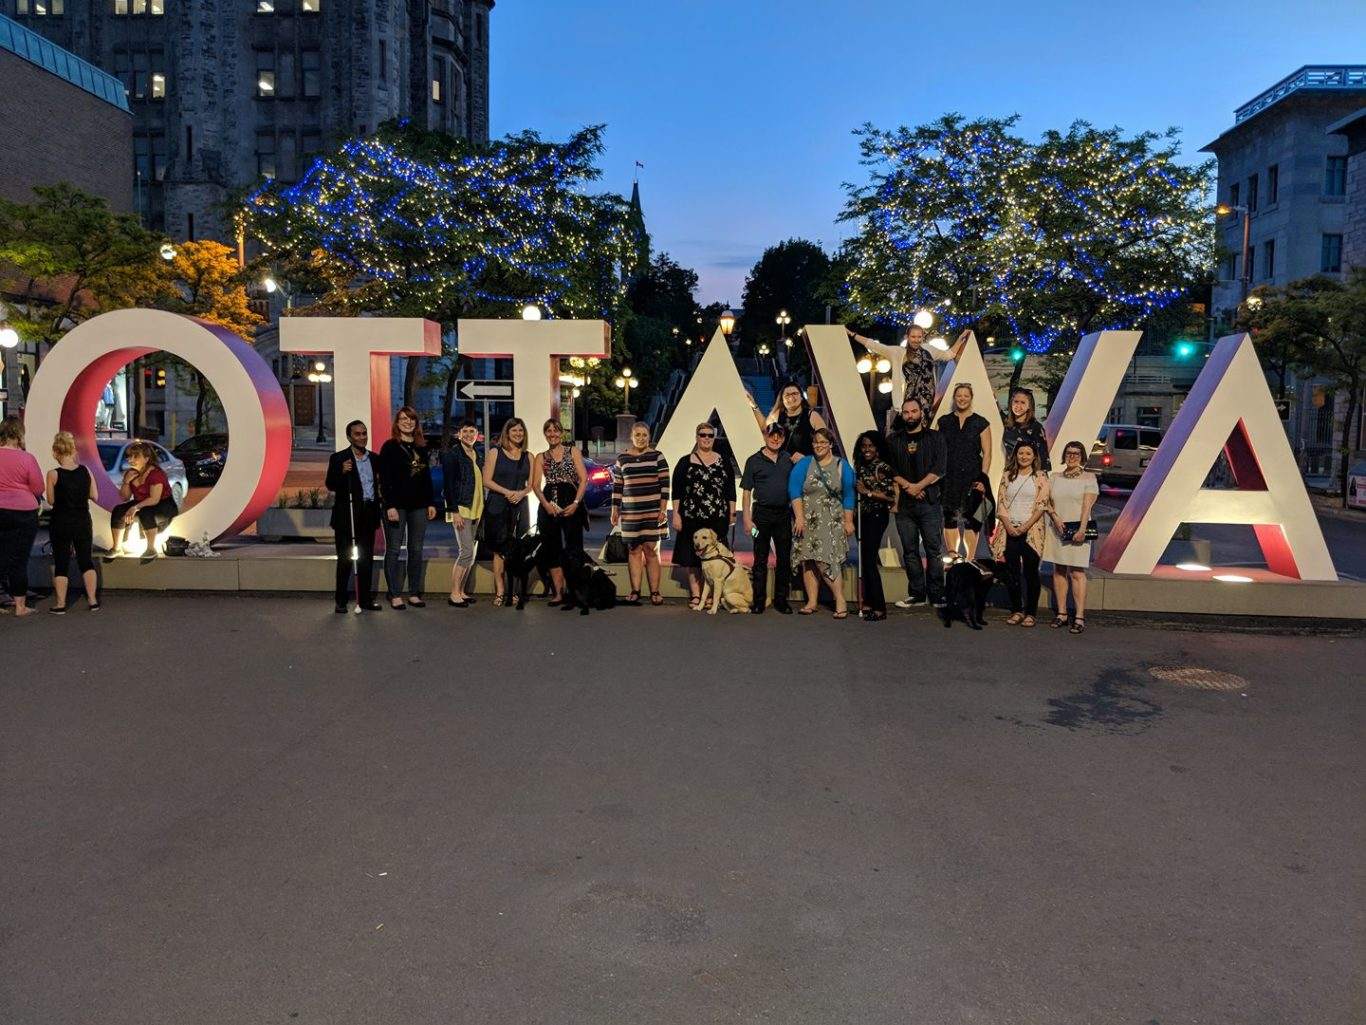 A group of people and guide dogs stand in front of the Ottawa sign.